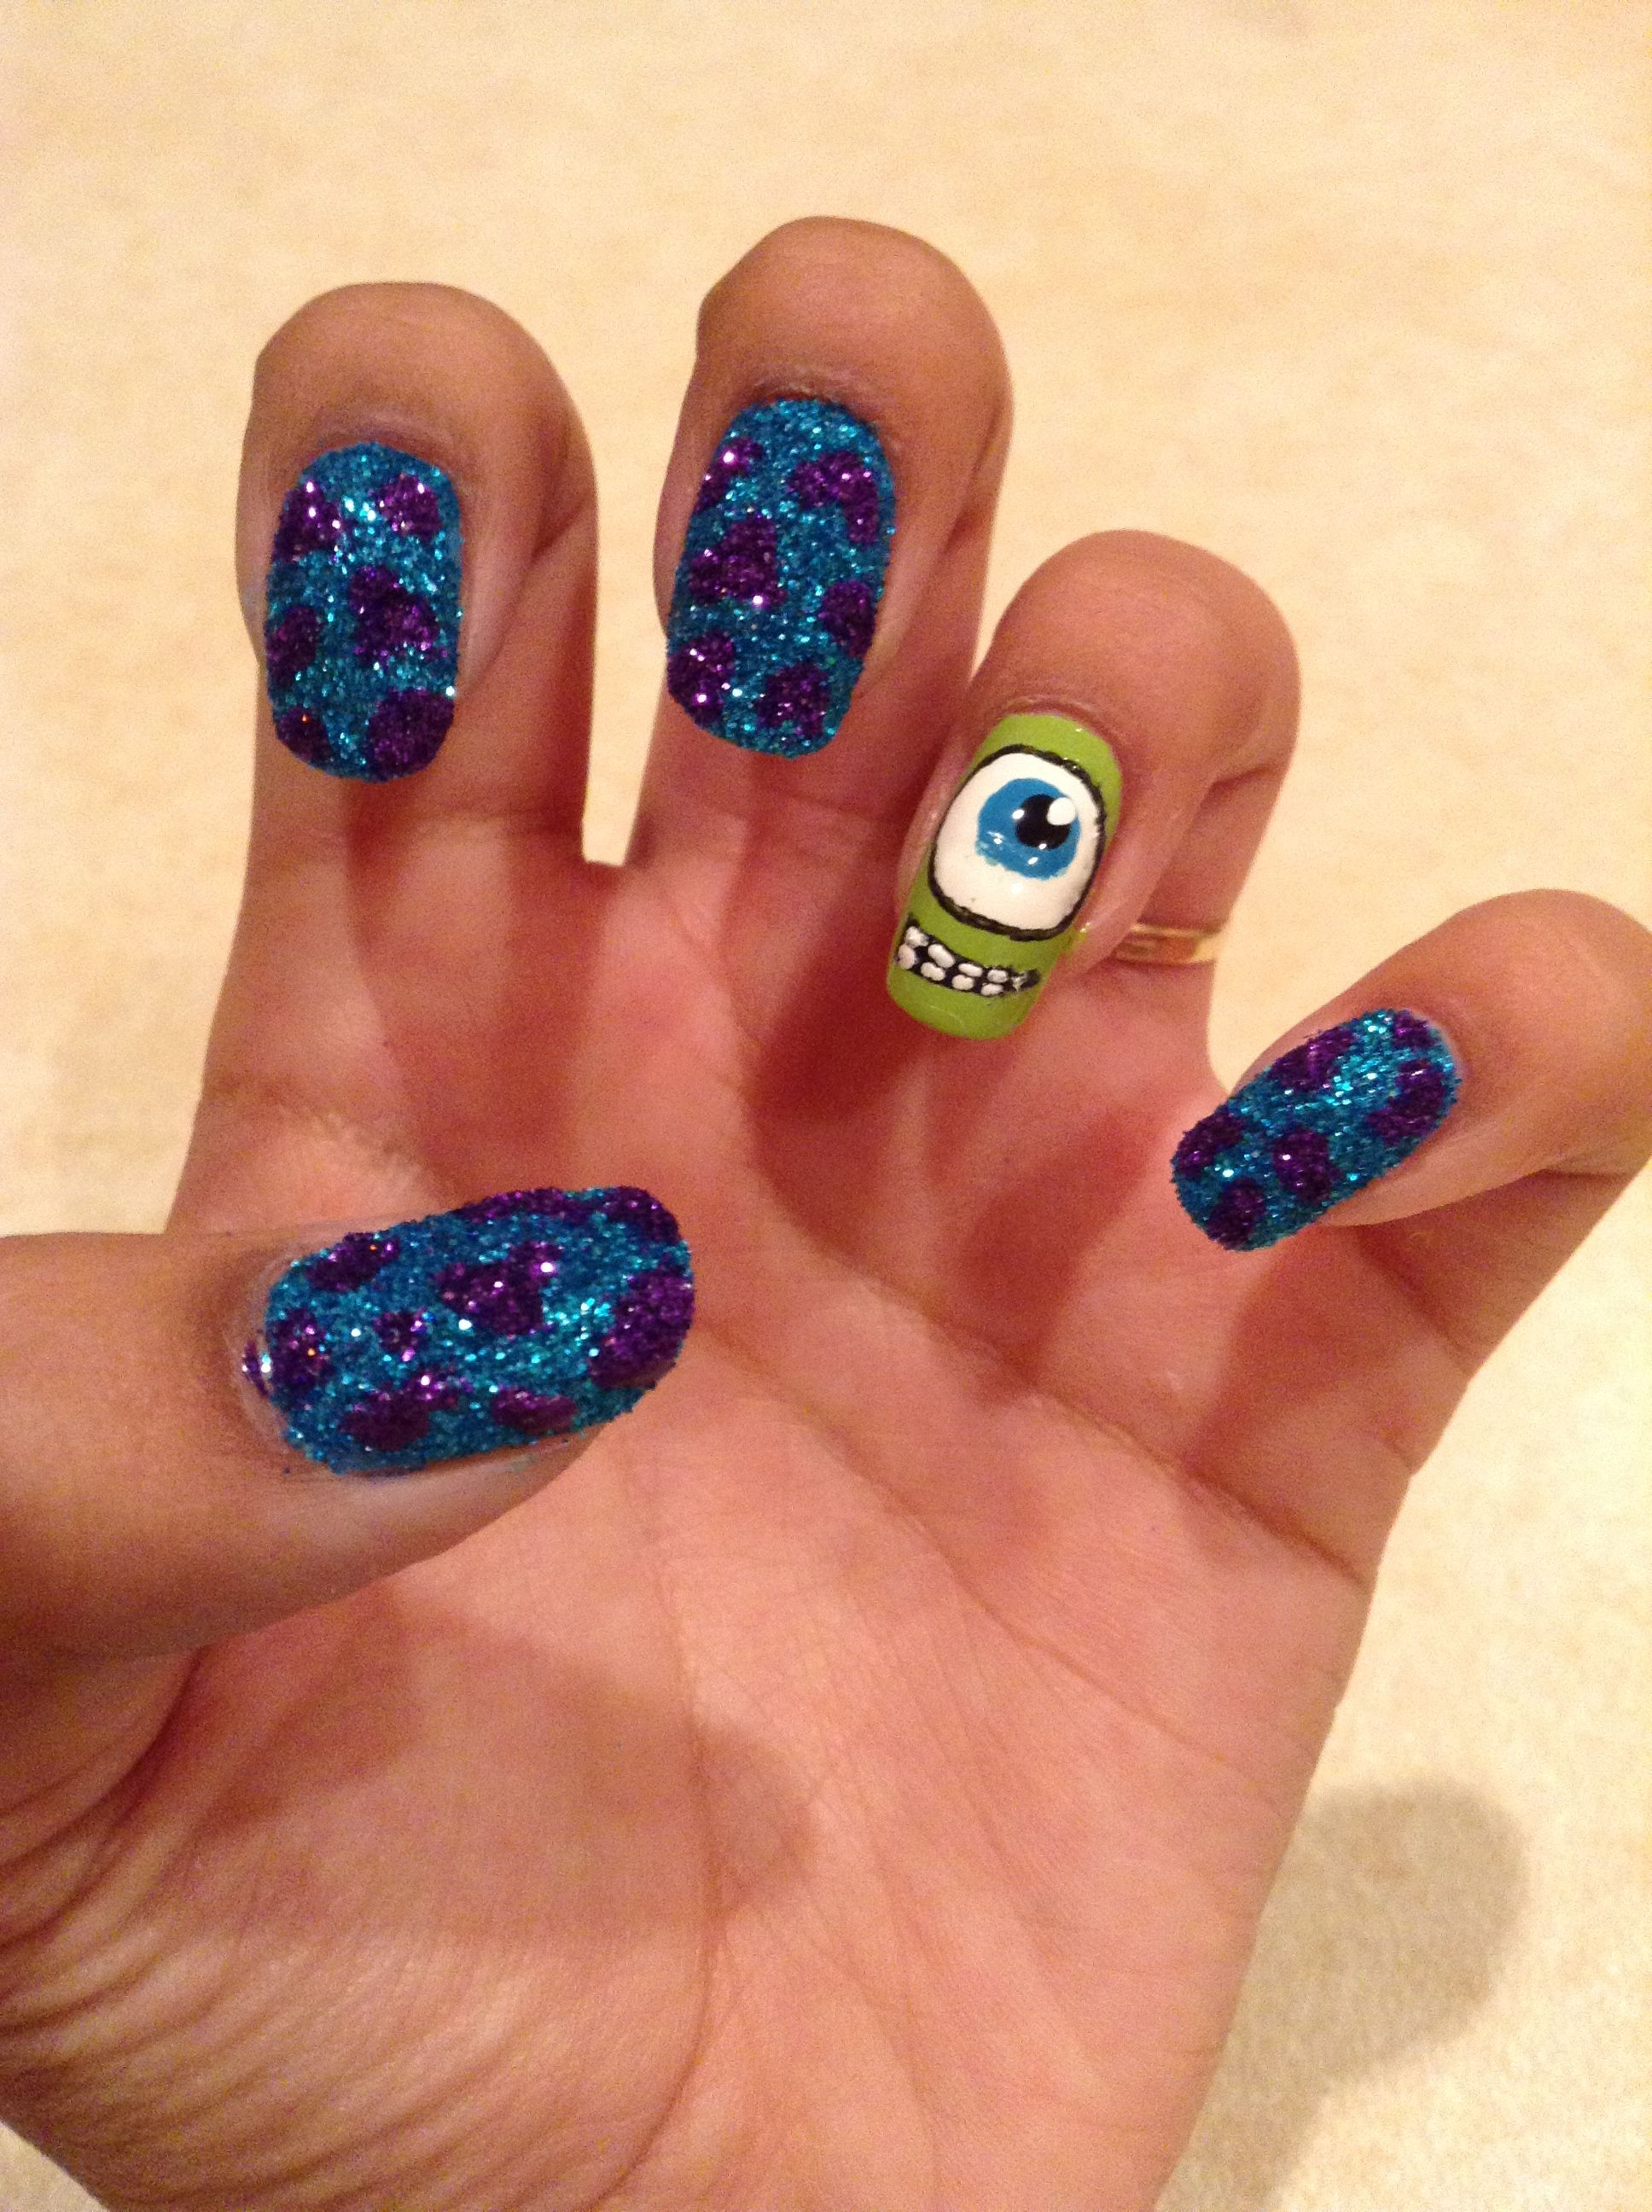 Monsters Inc. Nails | My Nail Designs | Pinterest